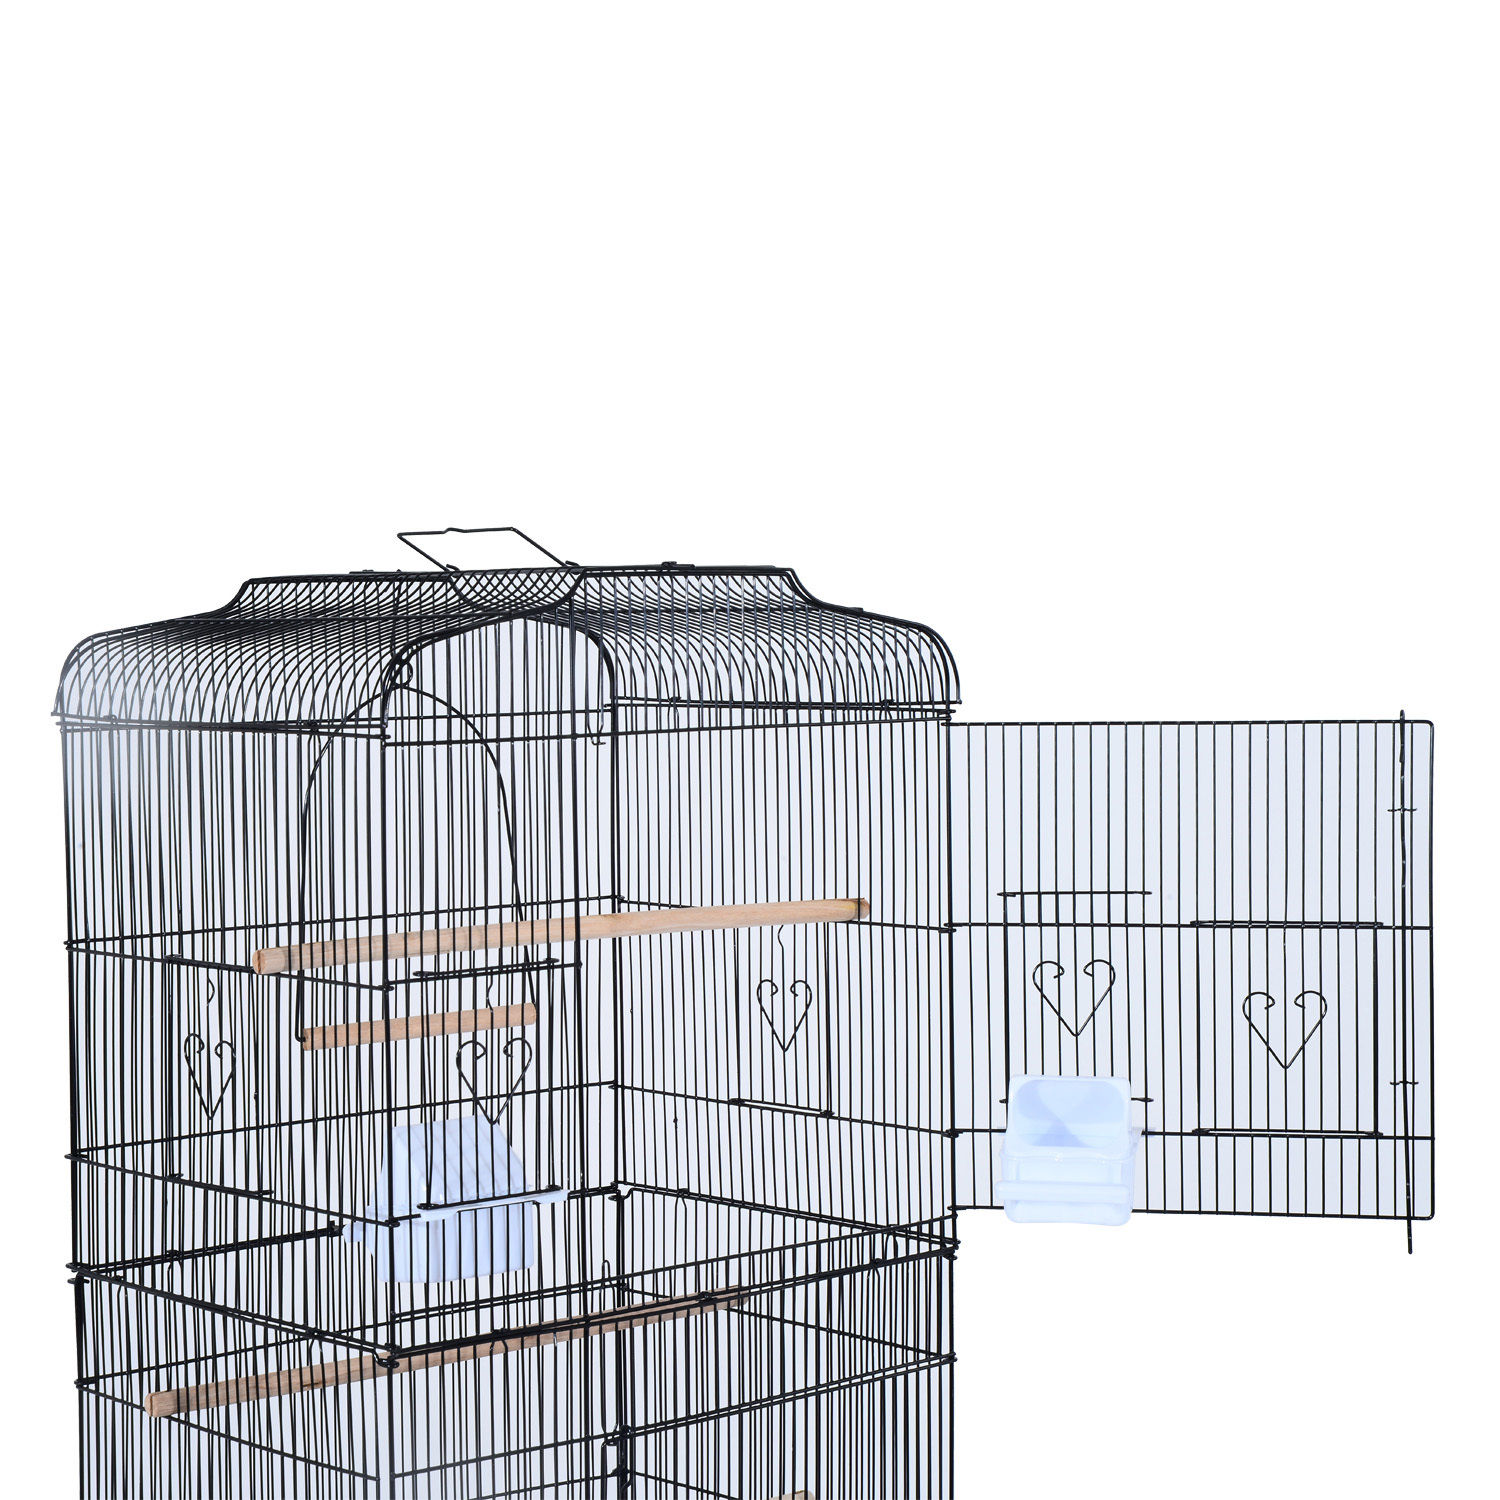 Bird-Cage-63-034-Large-Finch-Parrot-Conure-Metal-Wheels-Play-Top-House-Pet-Supplies thumbnail 5